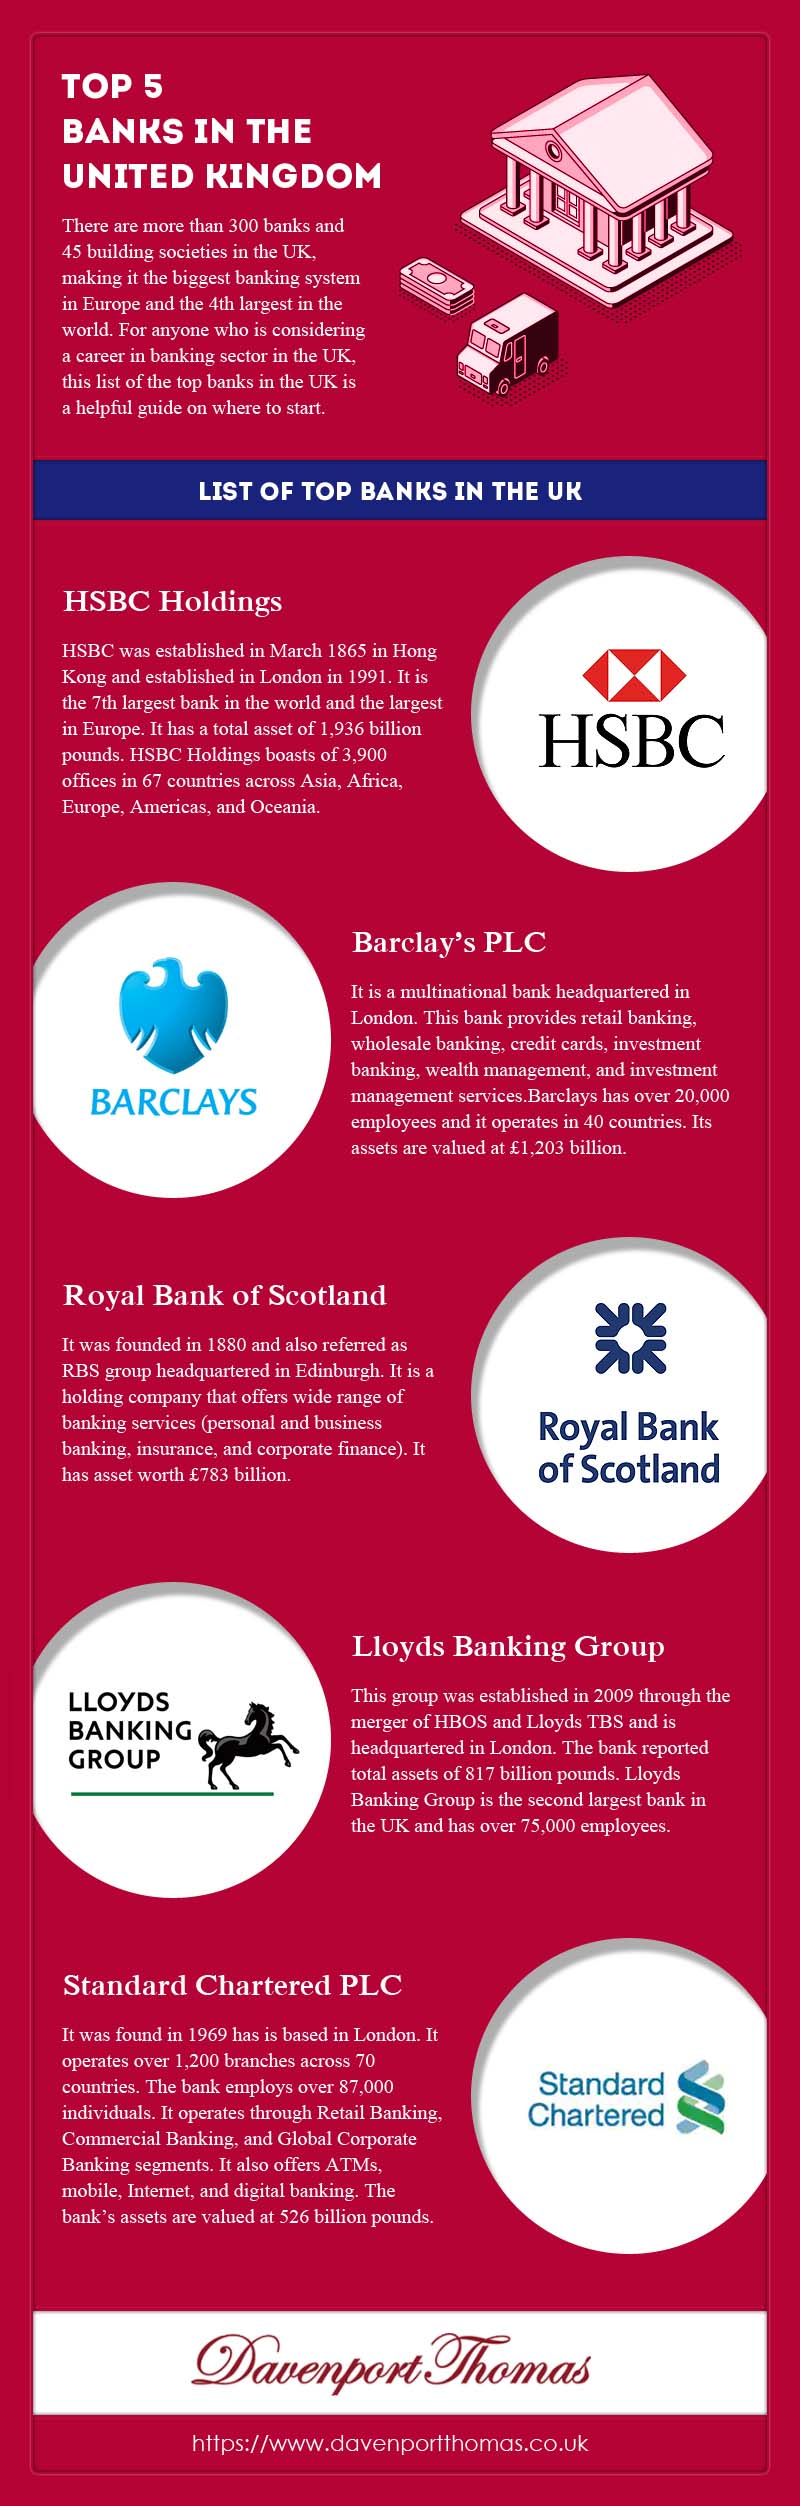 5 Banks in the United Kingdom